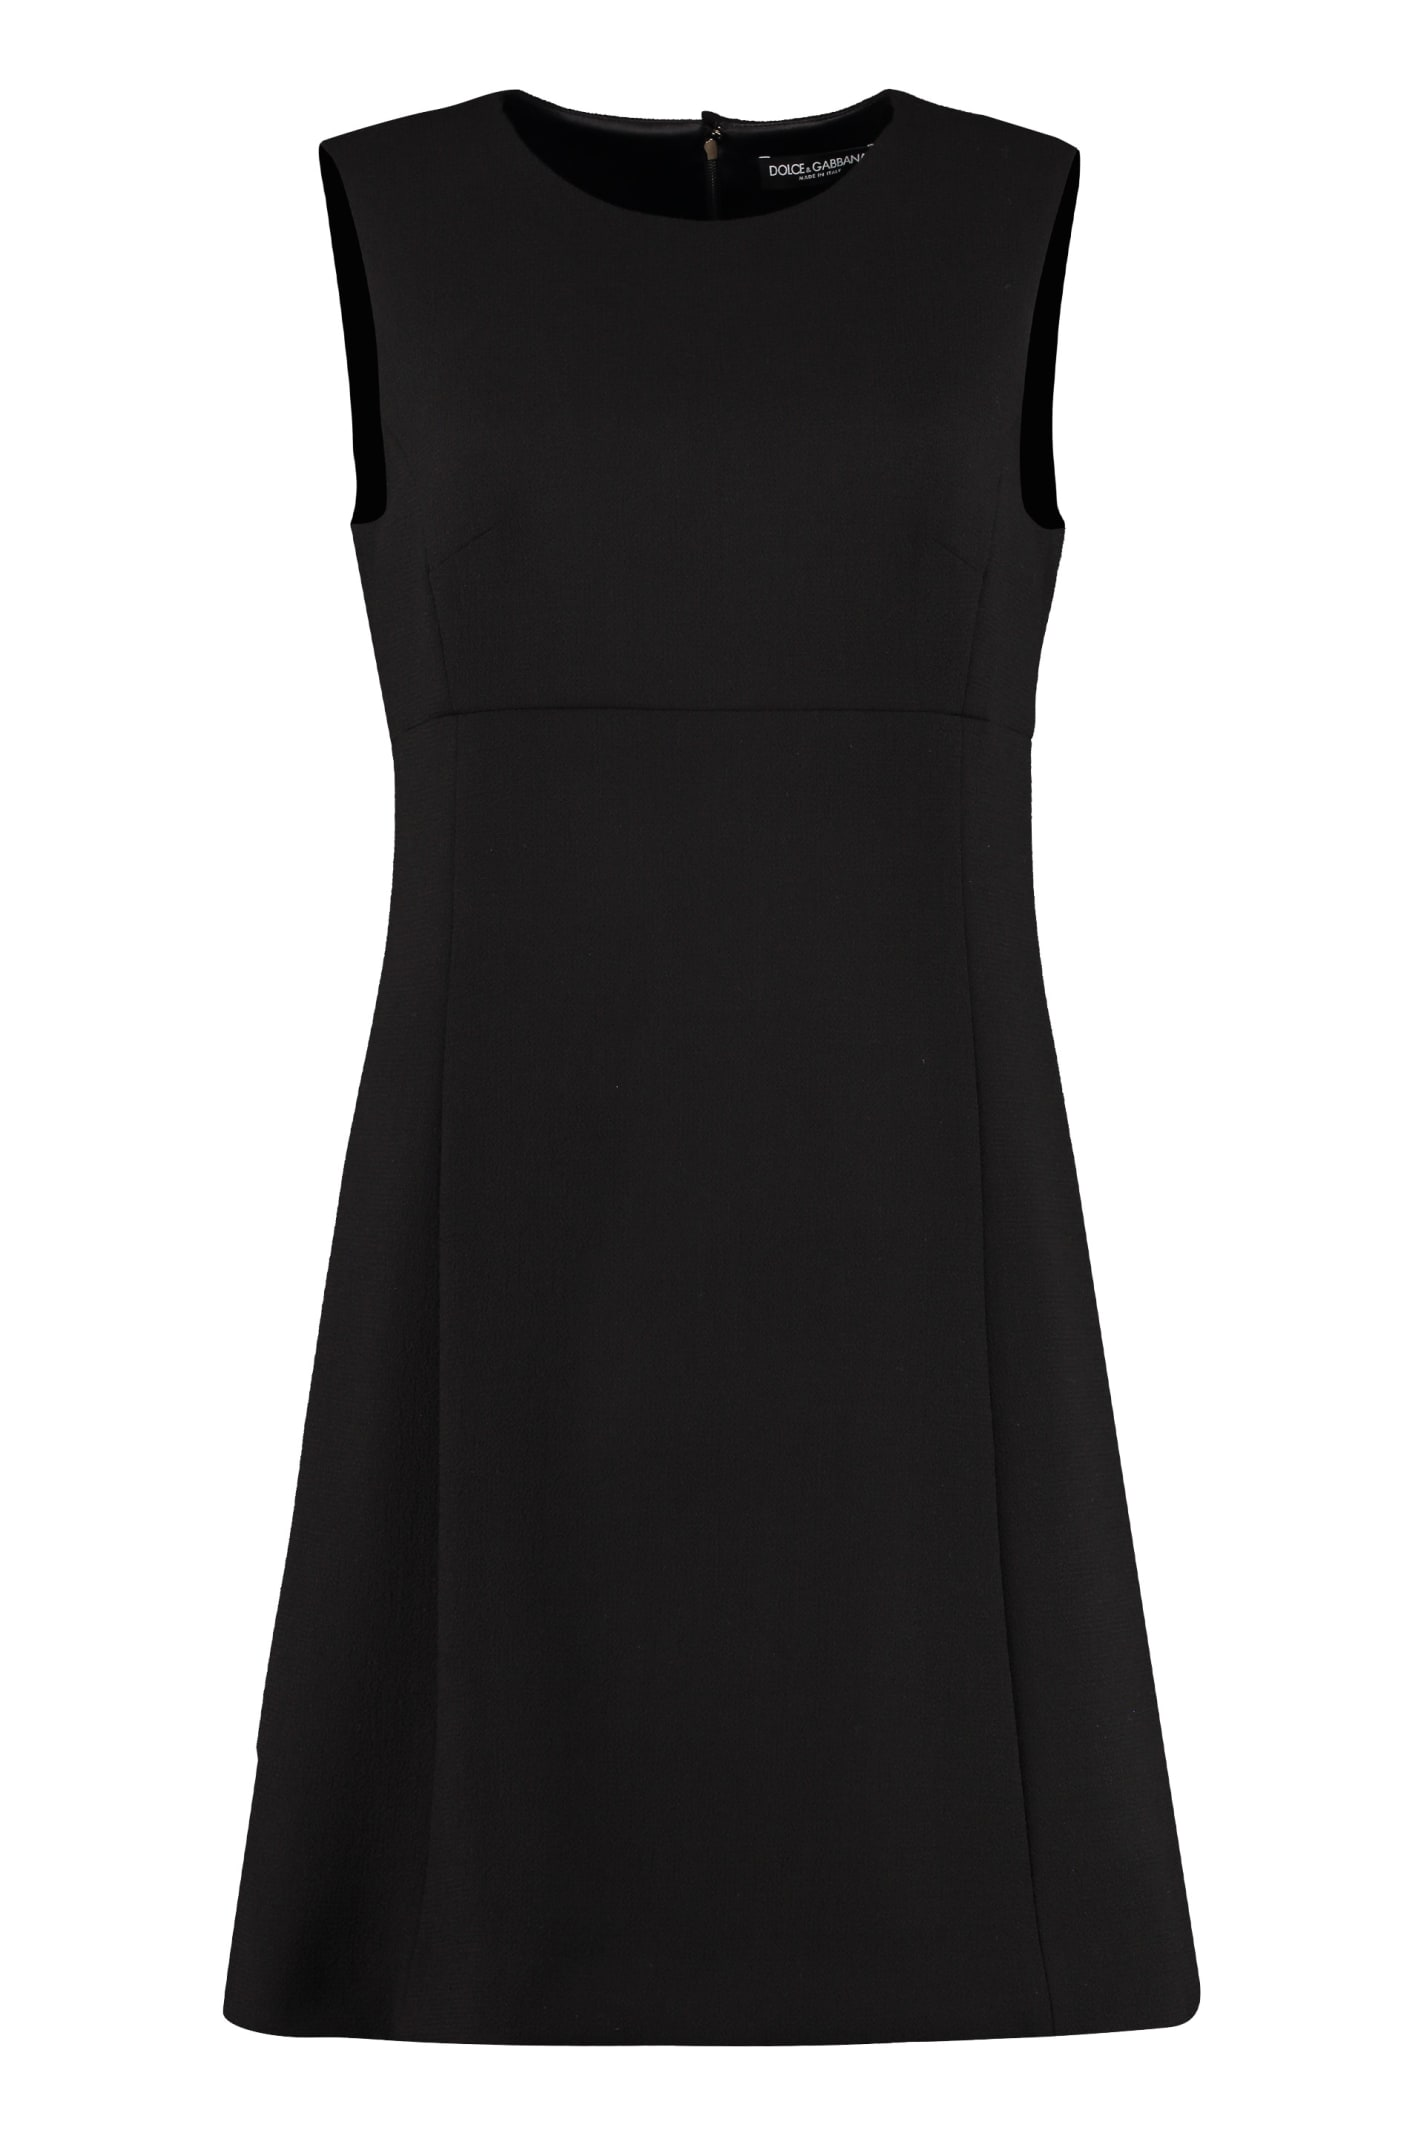 Dolce & Gabbana Wool Sheath Dress